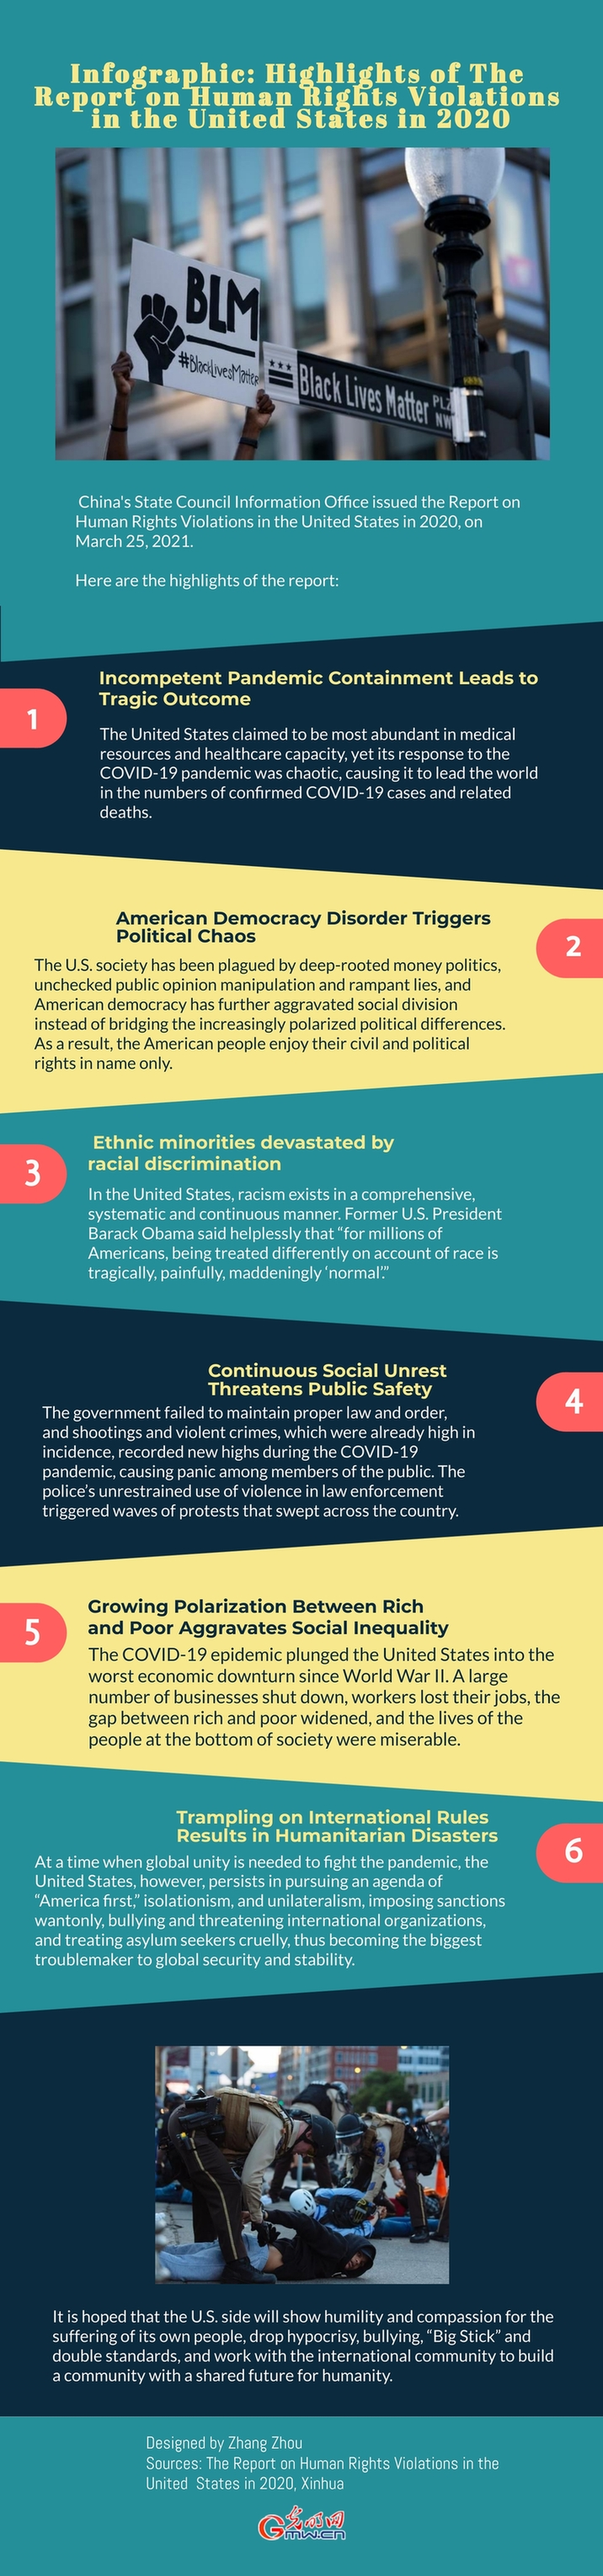 Infographic: Highlights of The Report on Human Rights Violations in the United States in 2020